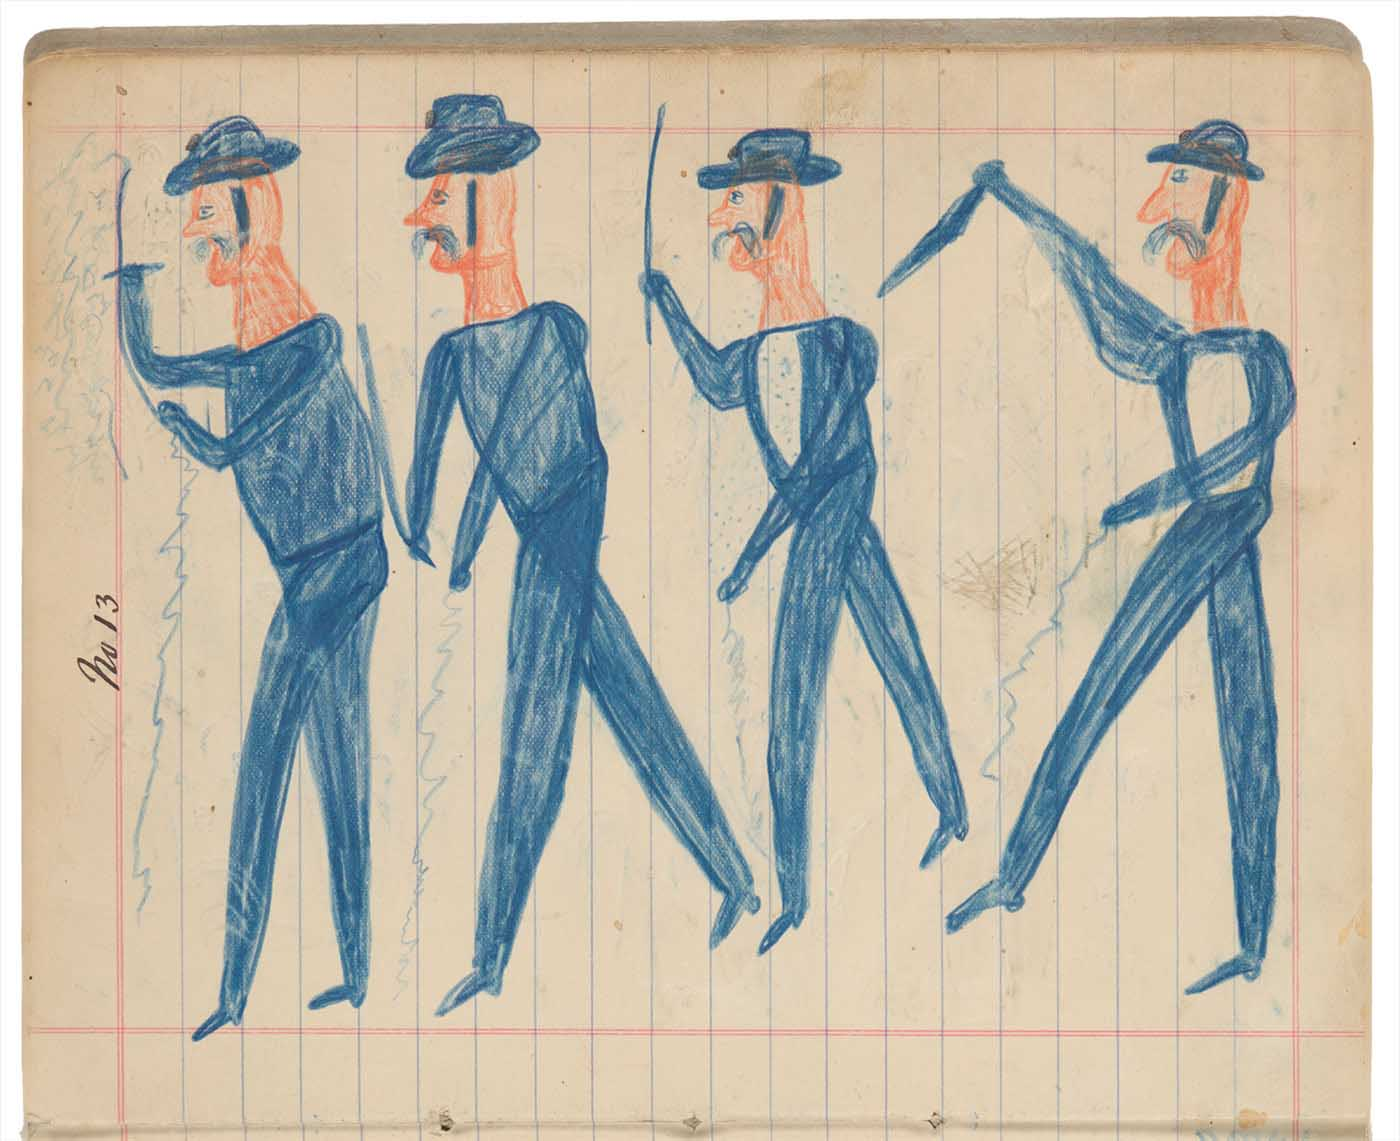 Sketchbook drawings of four blue figures wearing hats and holding weapons - click to view larger image